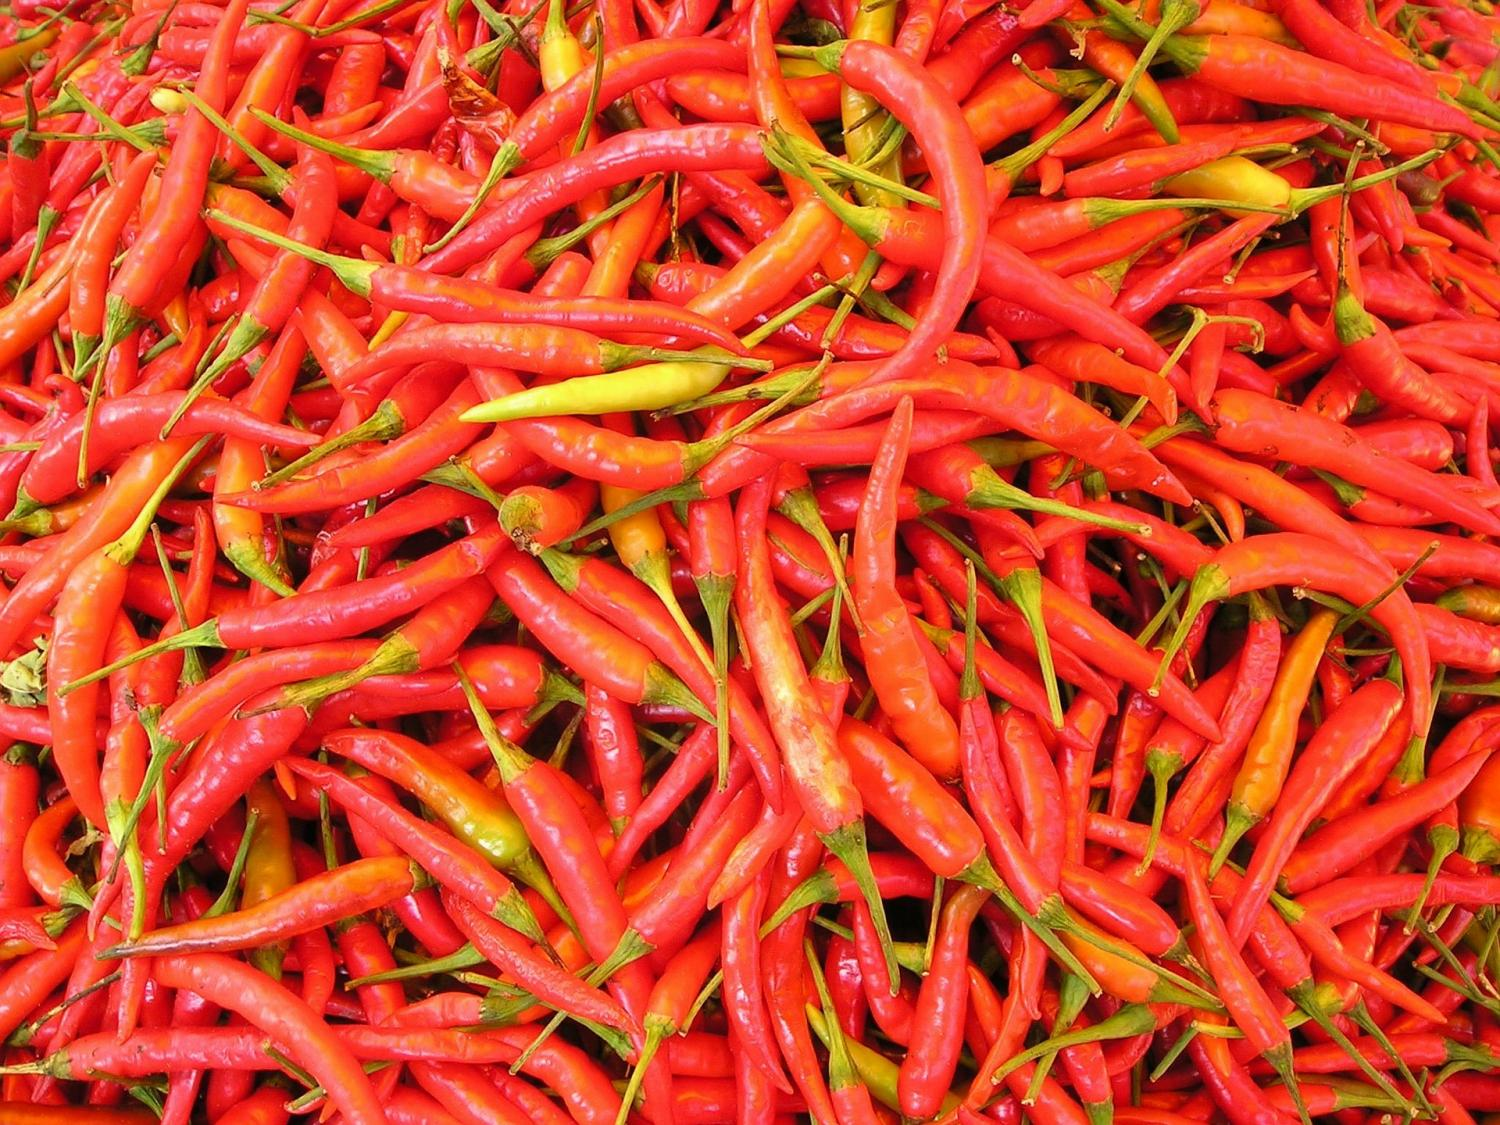 Active ingredients in both hot peppers and cannabis calm for Imagenes de productos americanos